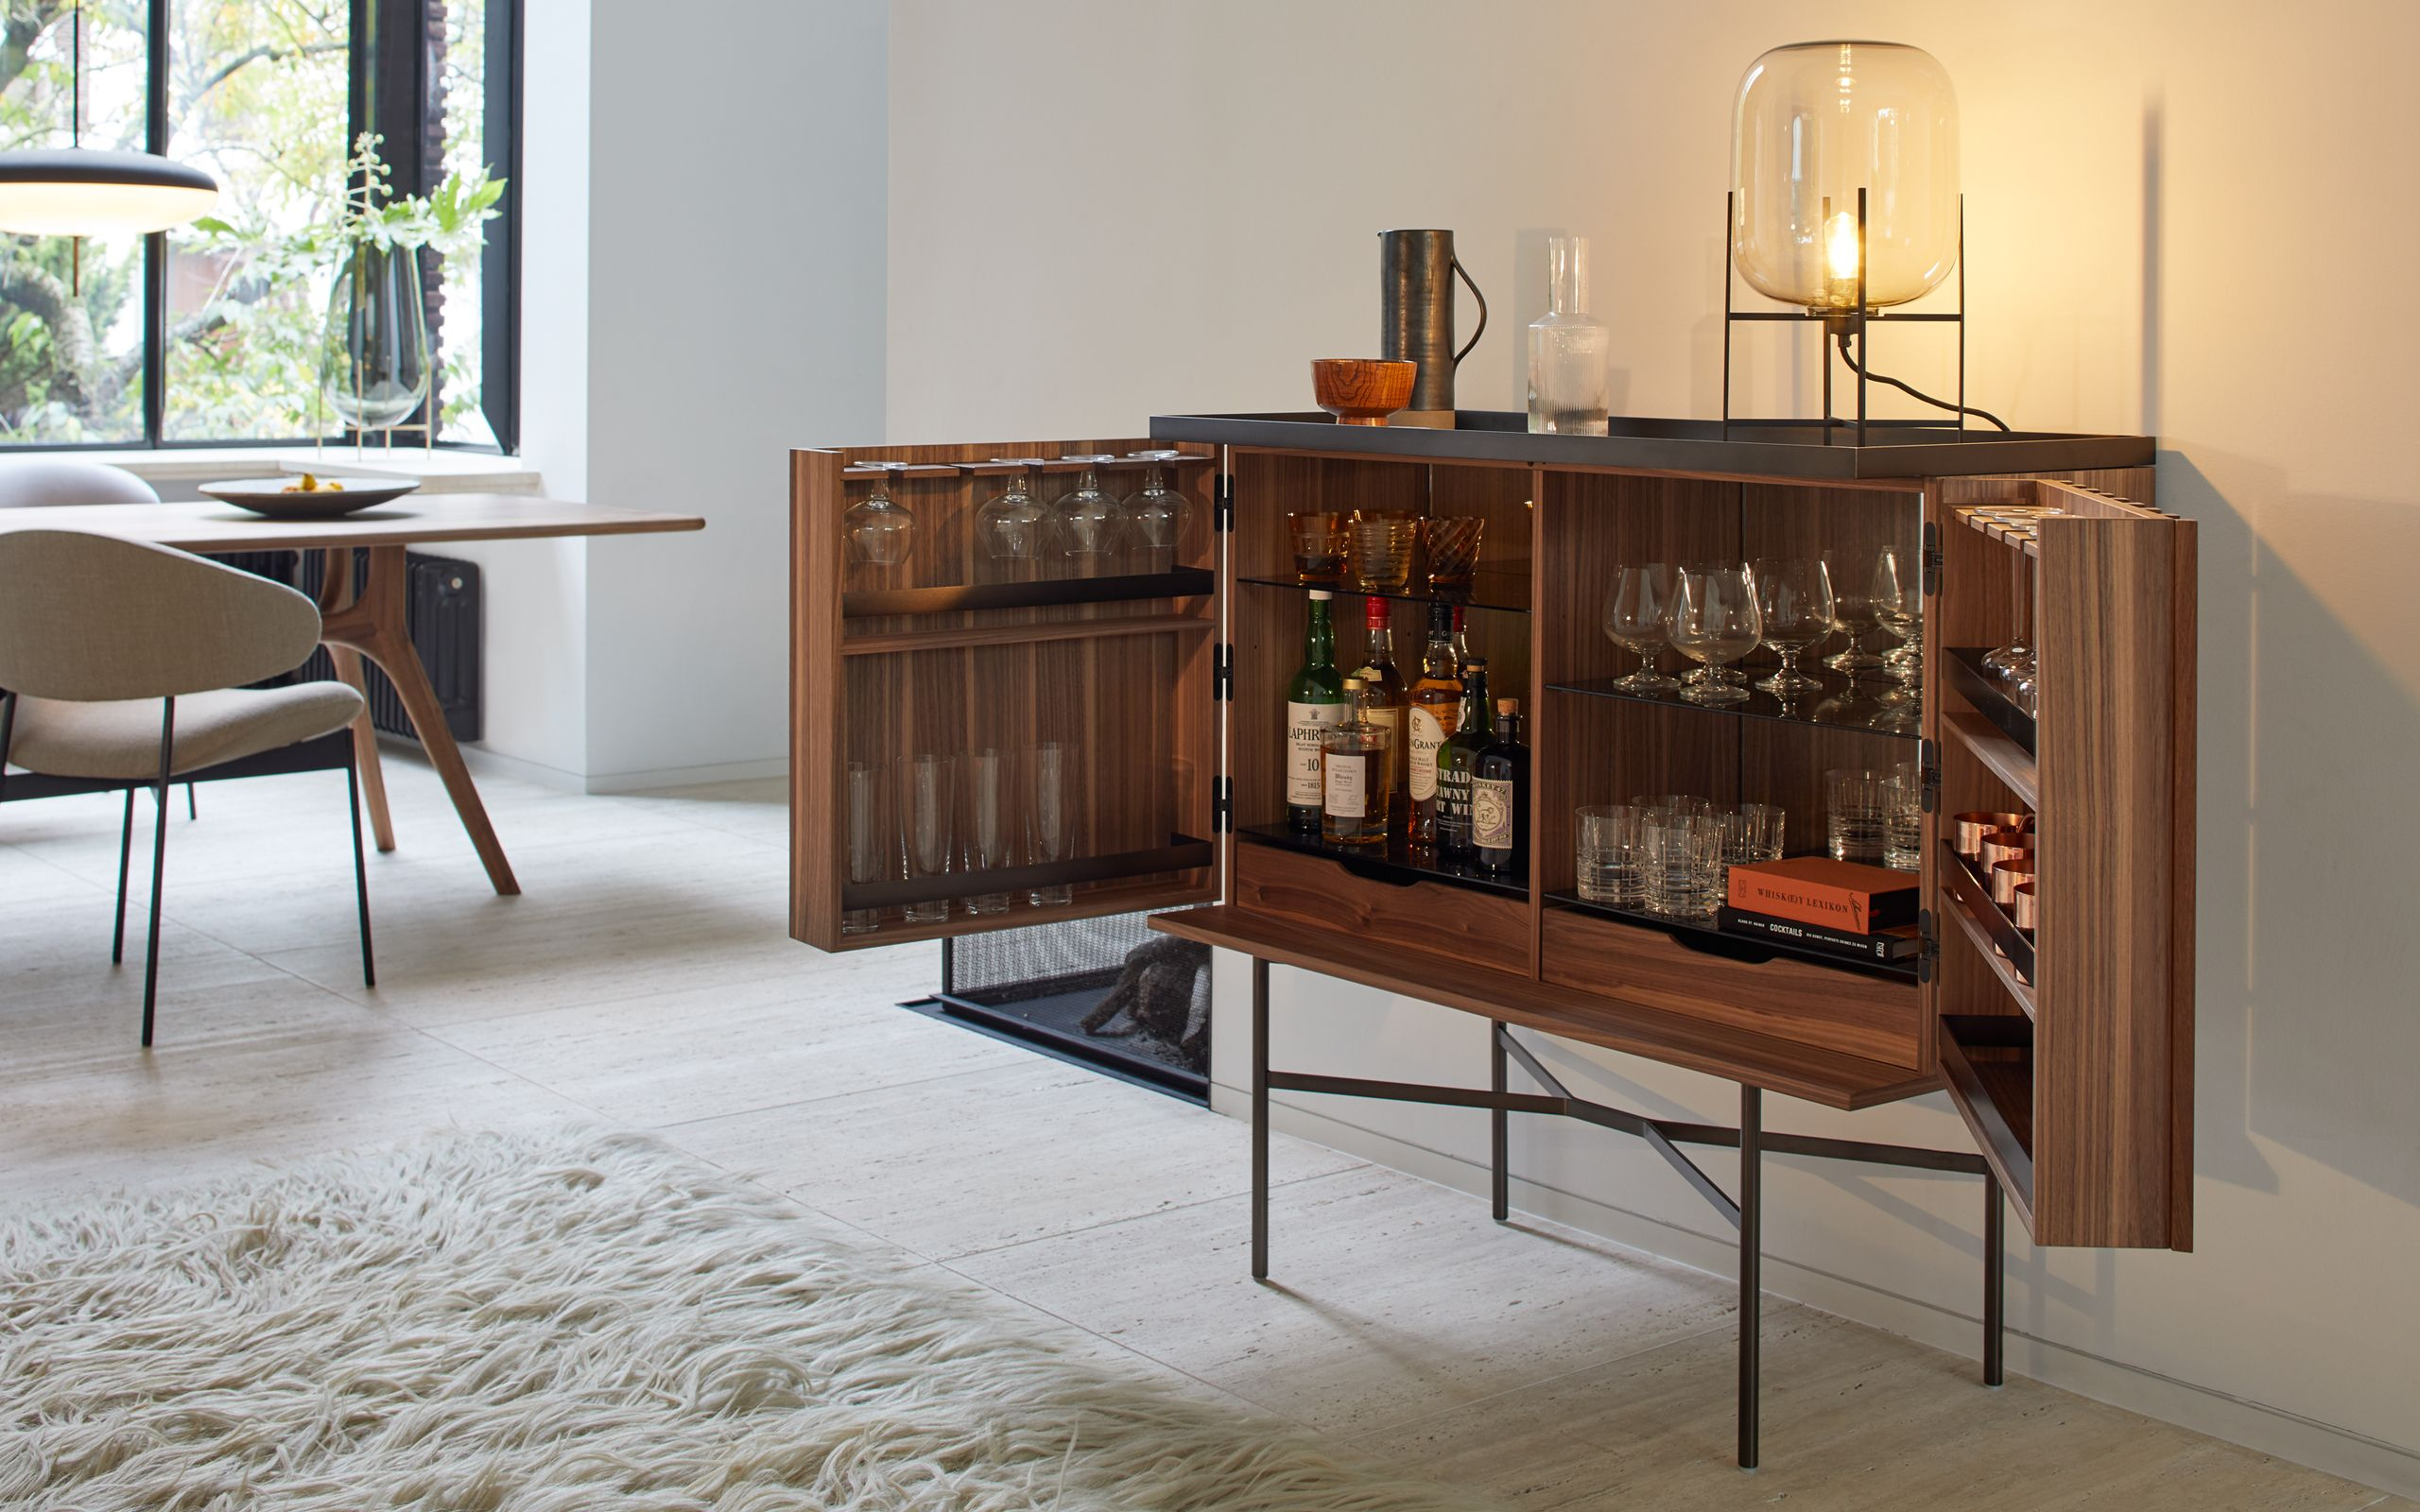 100 Modern Buffets And Cabinets For Your Home Decor Barschrank